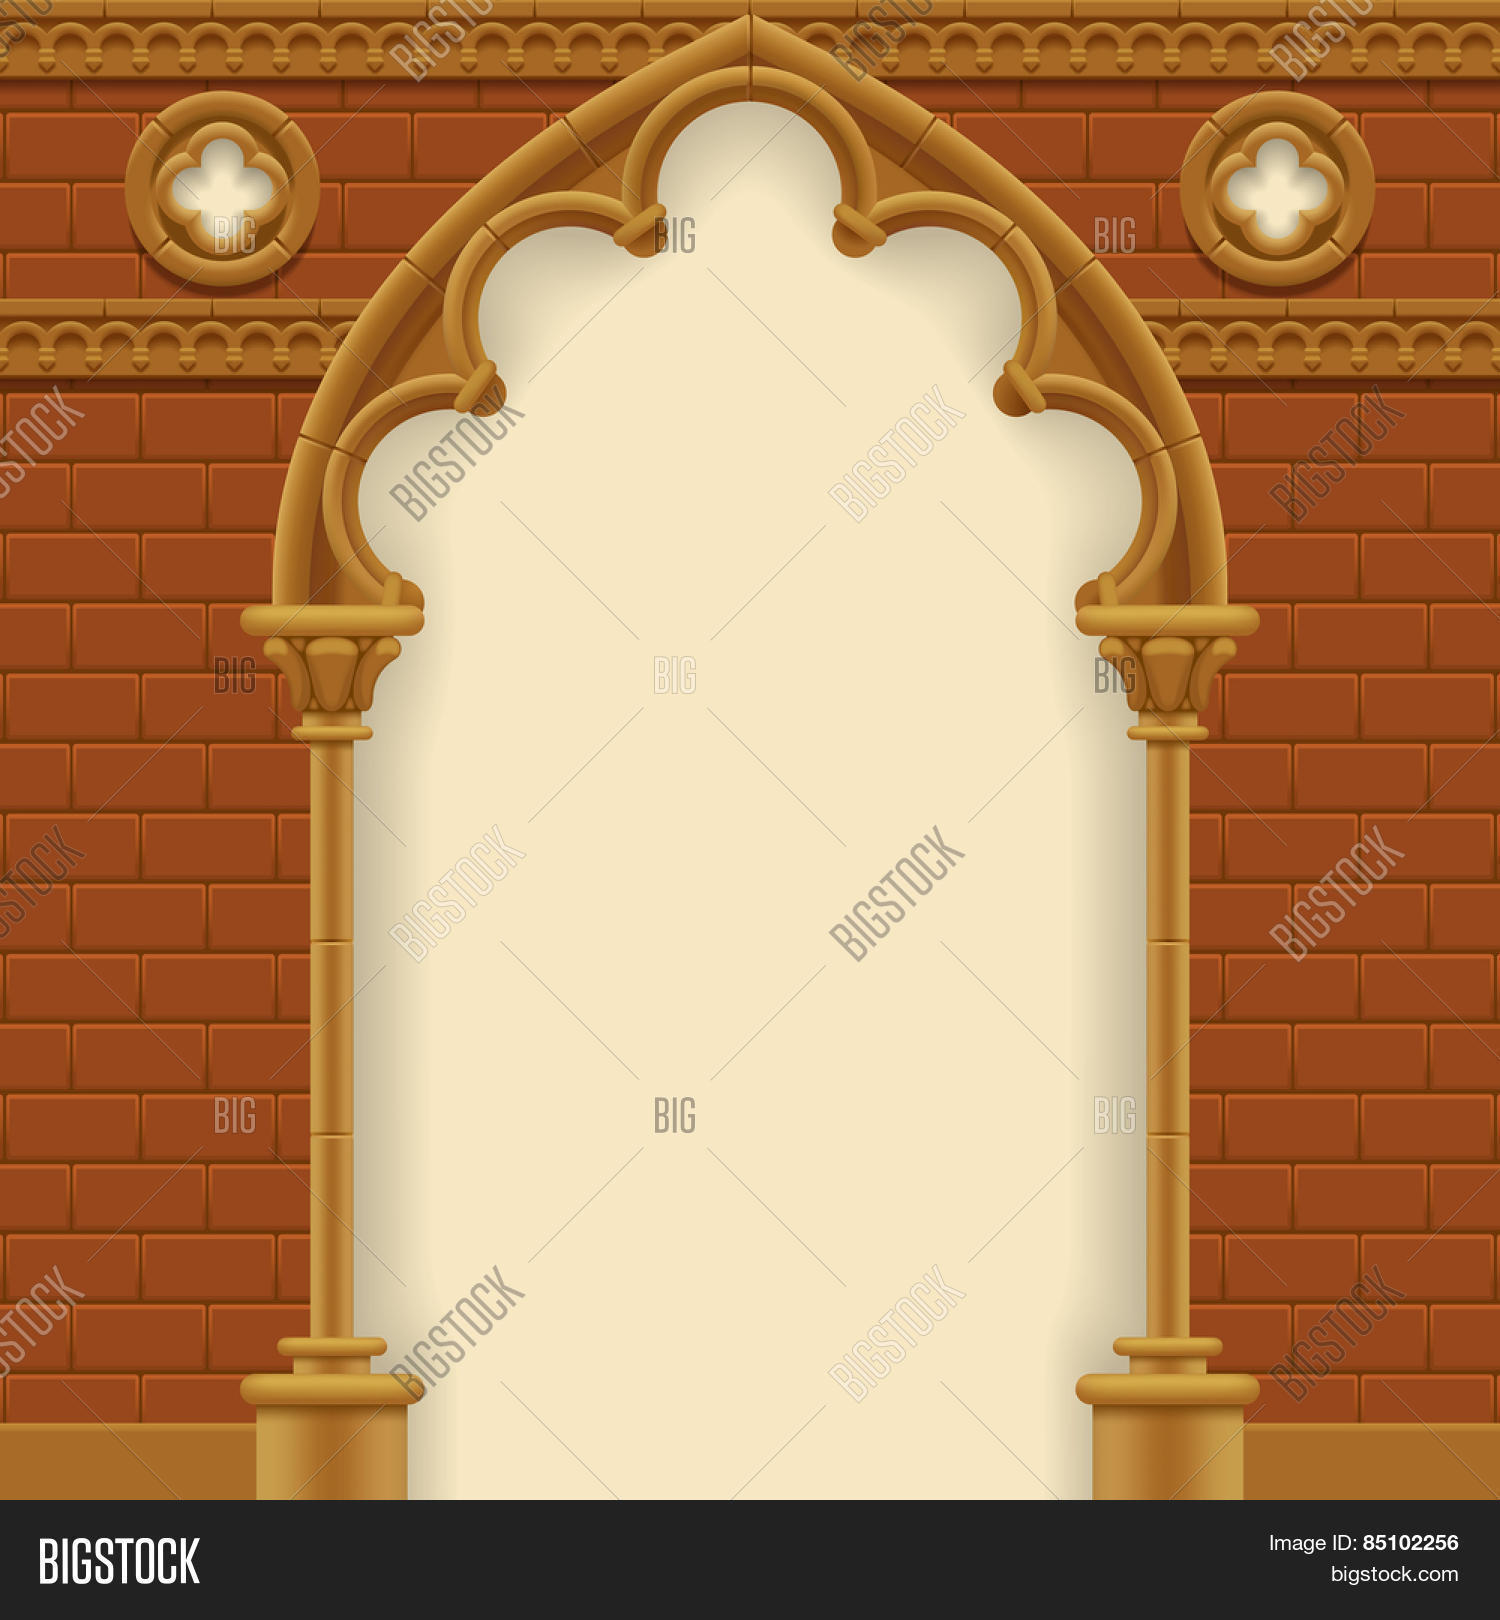 Stone Gothic Arch And Wall Antique Architecture Frame Vector Illustration